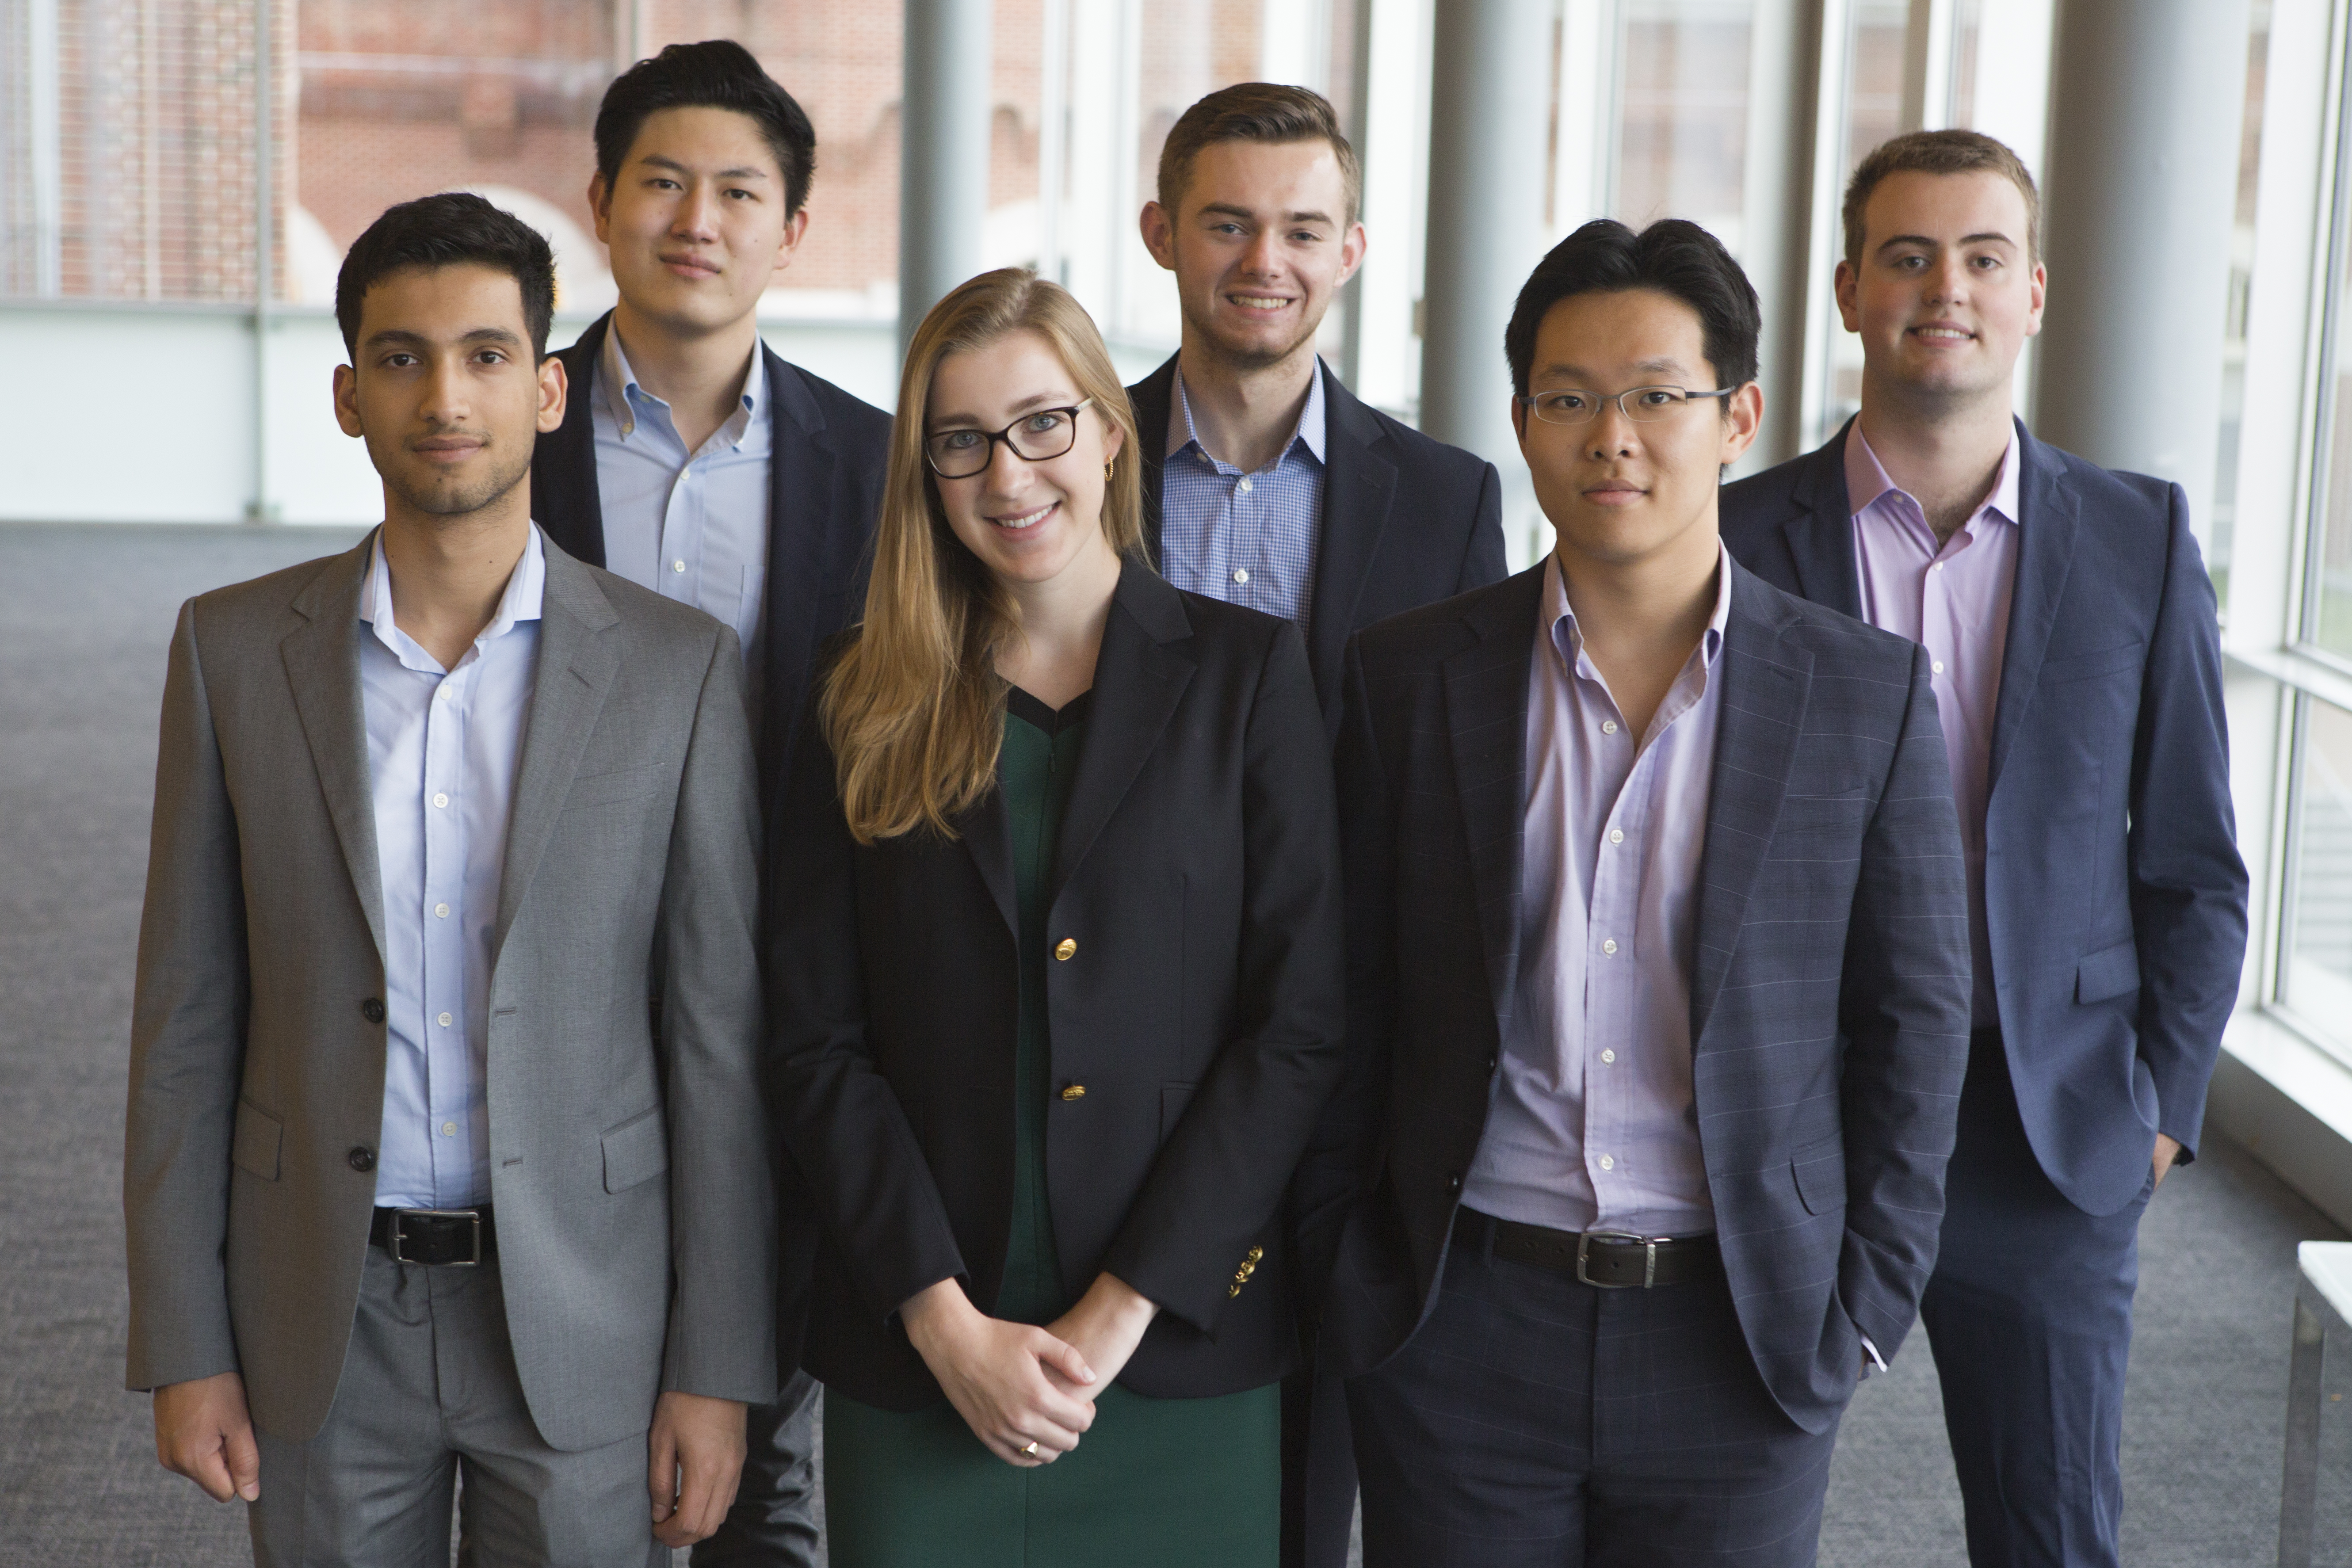 COURTESY GEORGETOWN UNIVERSITY PUBLIC REAL ESTATE FUND James McLoughlin, back middle, and Lena Duffield, front middle, are members of the inaugural executive committee of the Georgetown University Public Real Estate Fund.